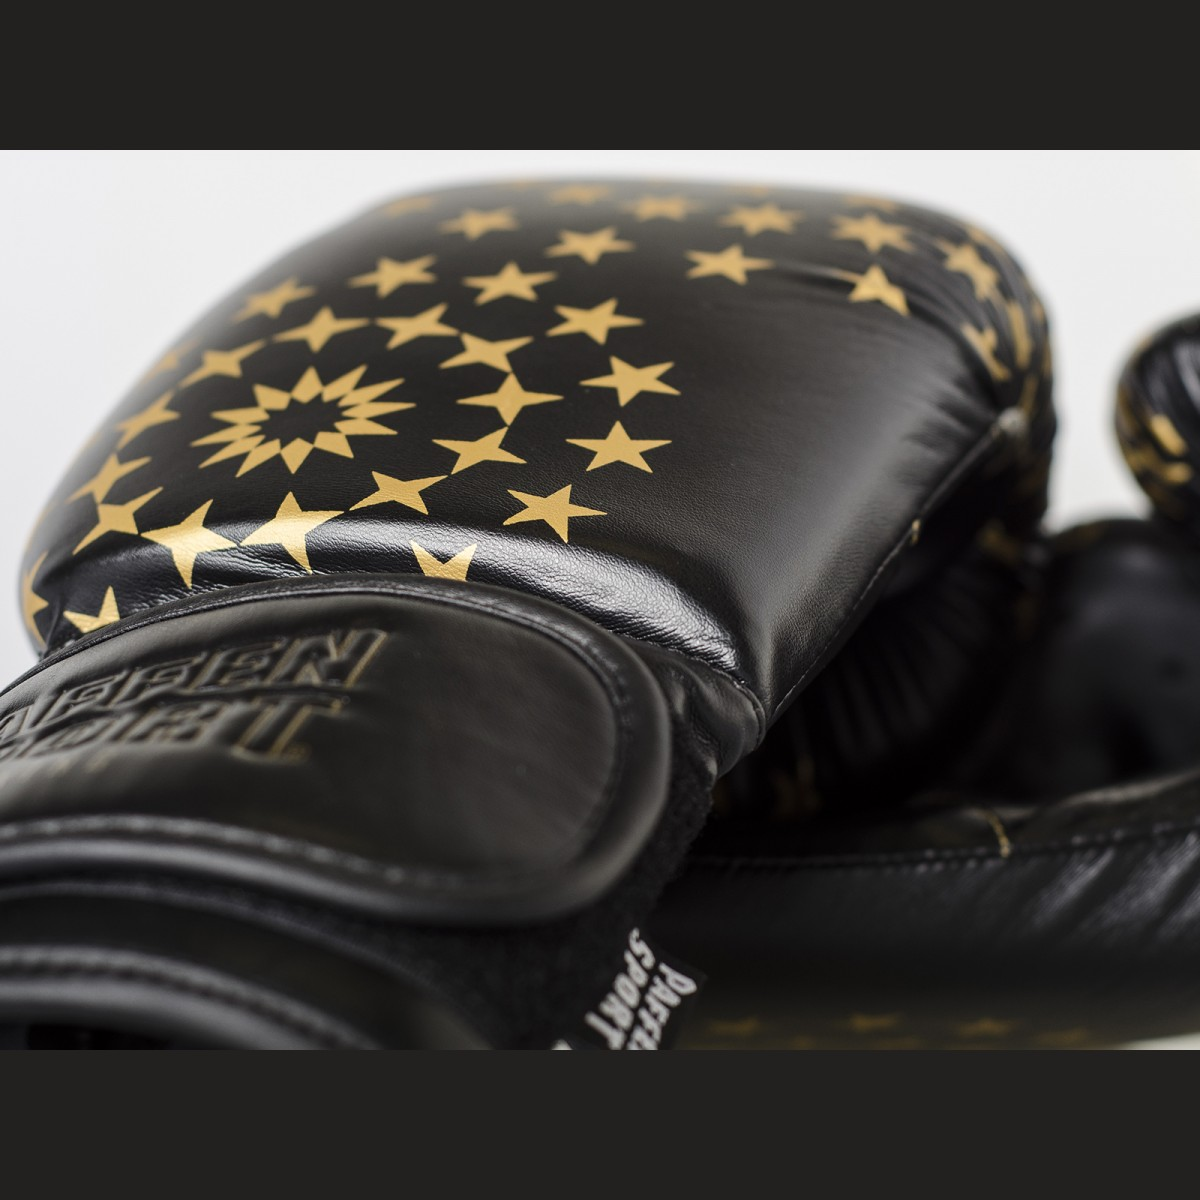 Paffen Sport Gloves Review: LADY Boxing Gloves For Women